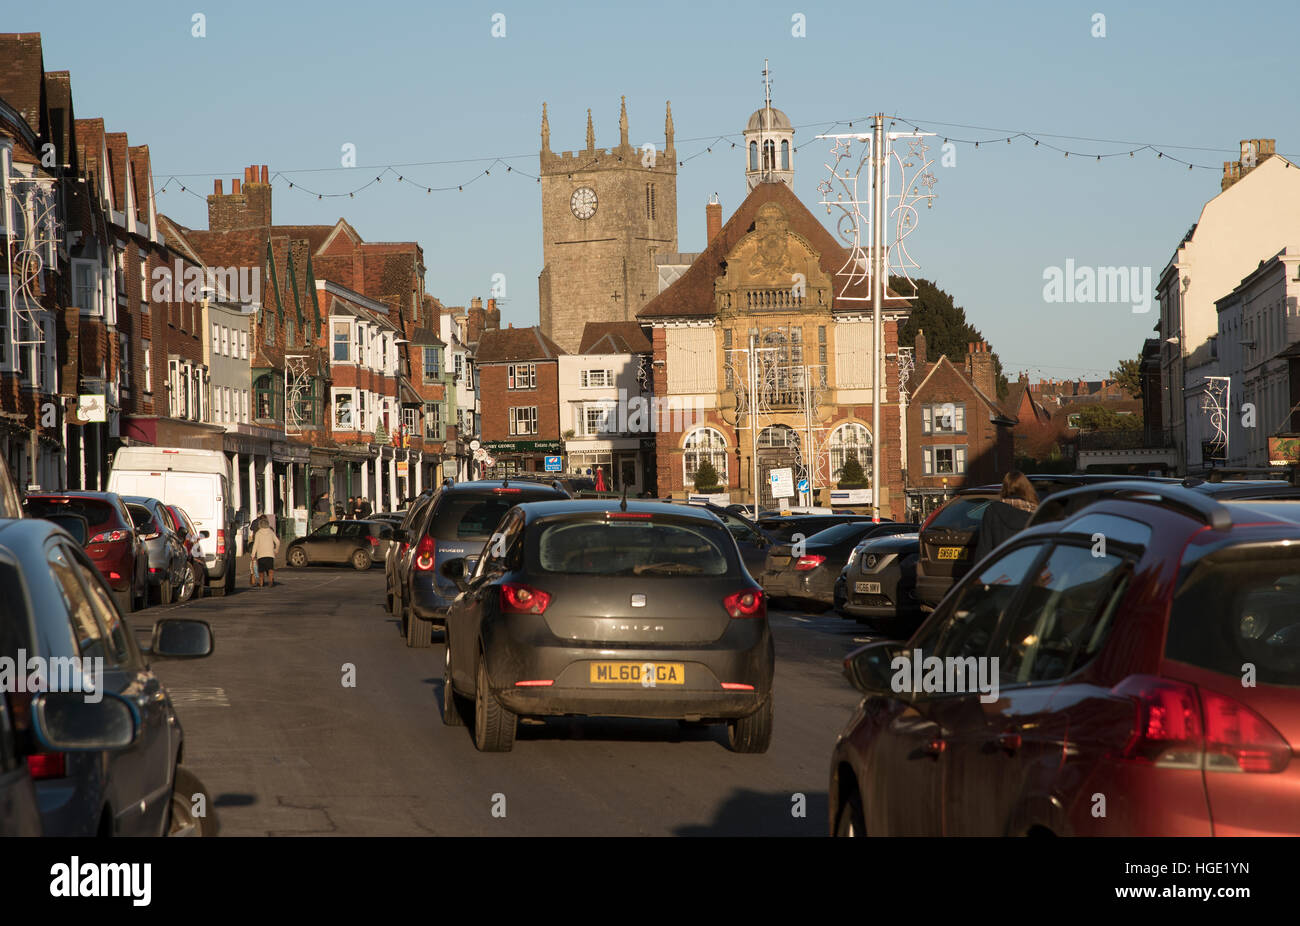 Marlborough town centre a market town in Wiltshire England UK - Stock Image